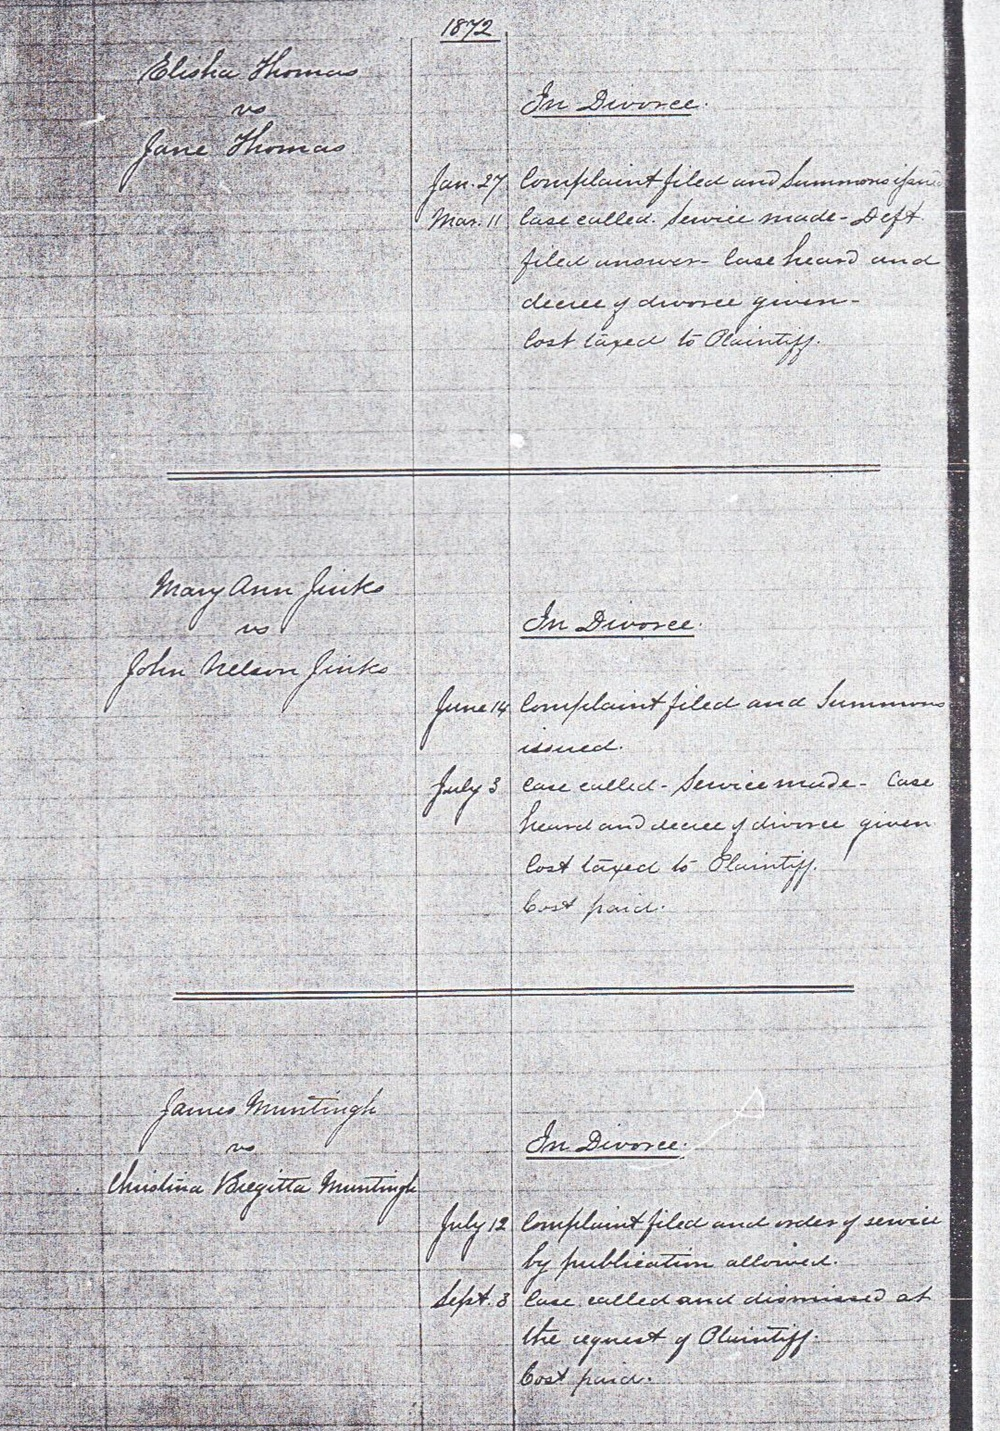 1872 Divorce of Mary Ann Jinks and John Nelson Jinks